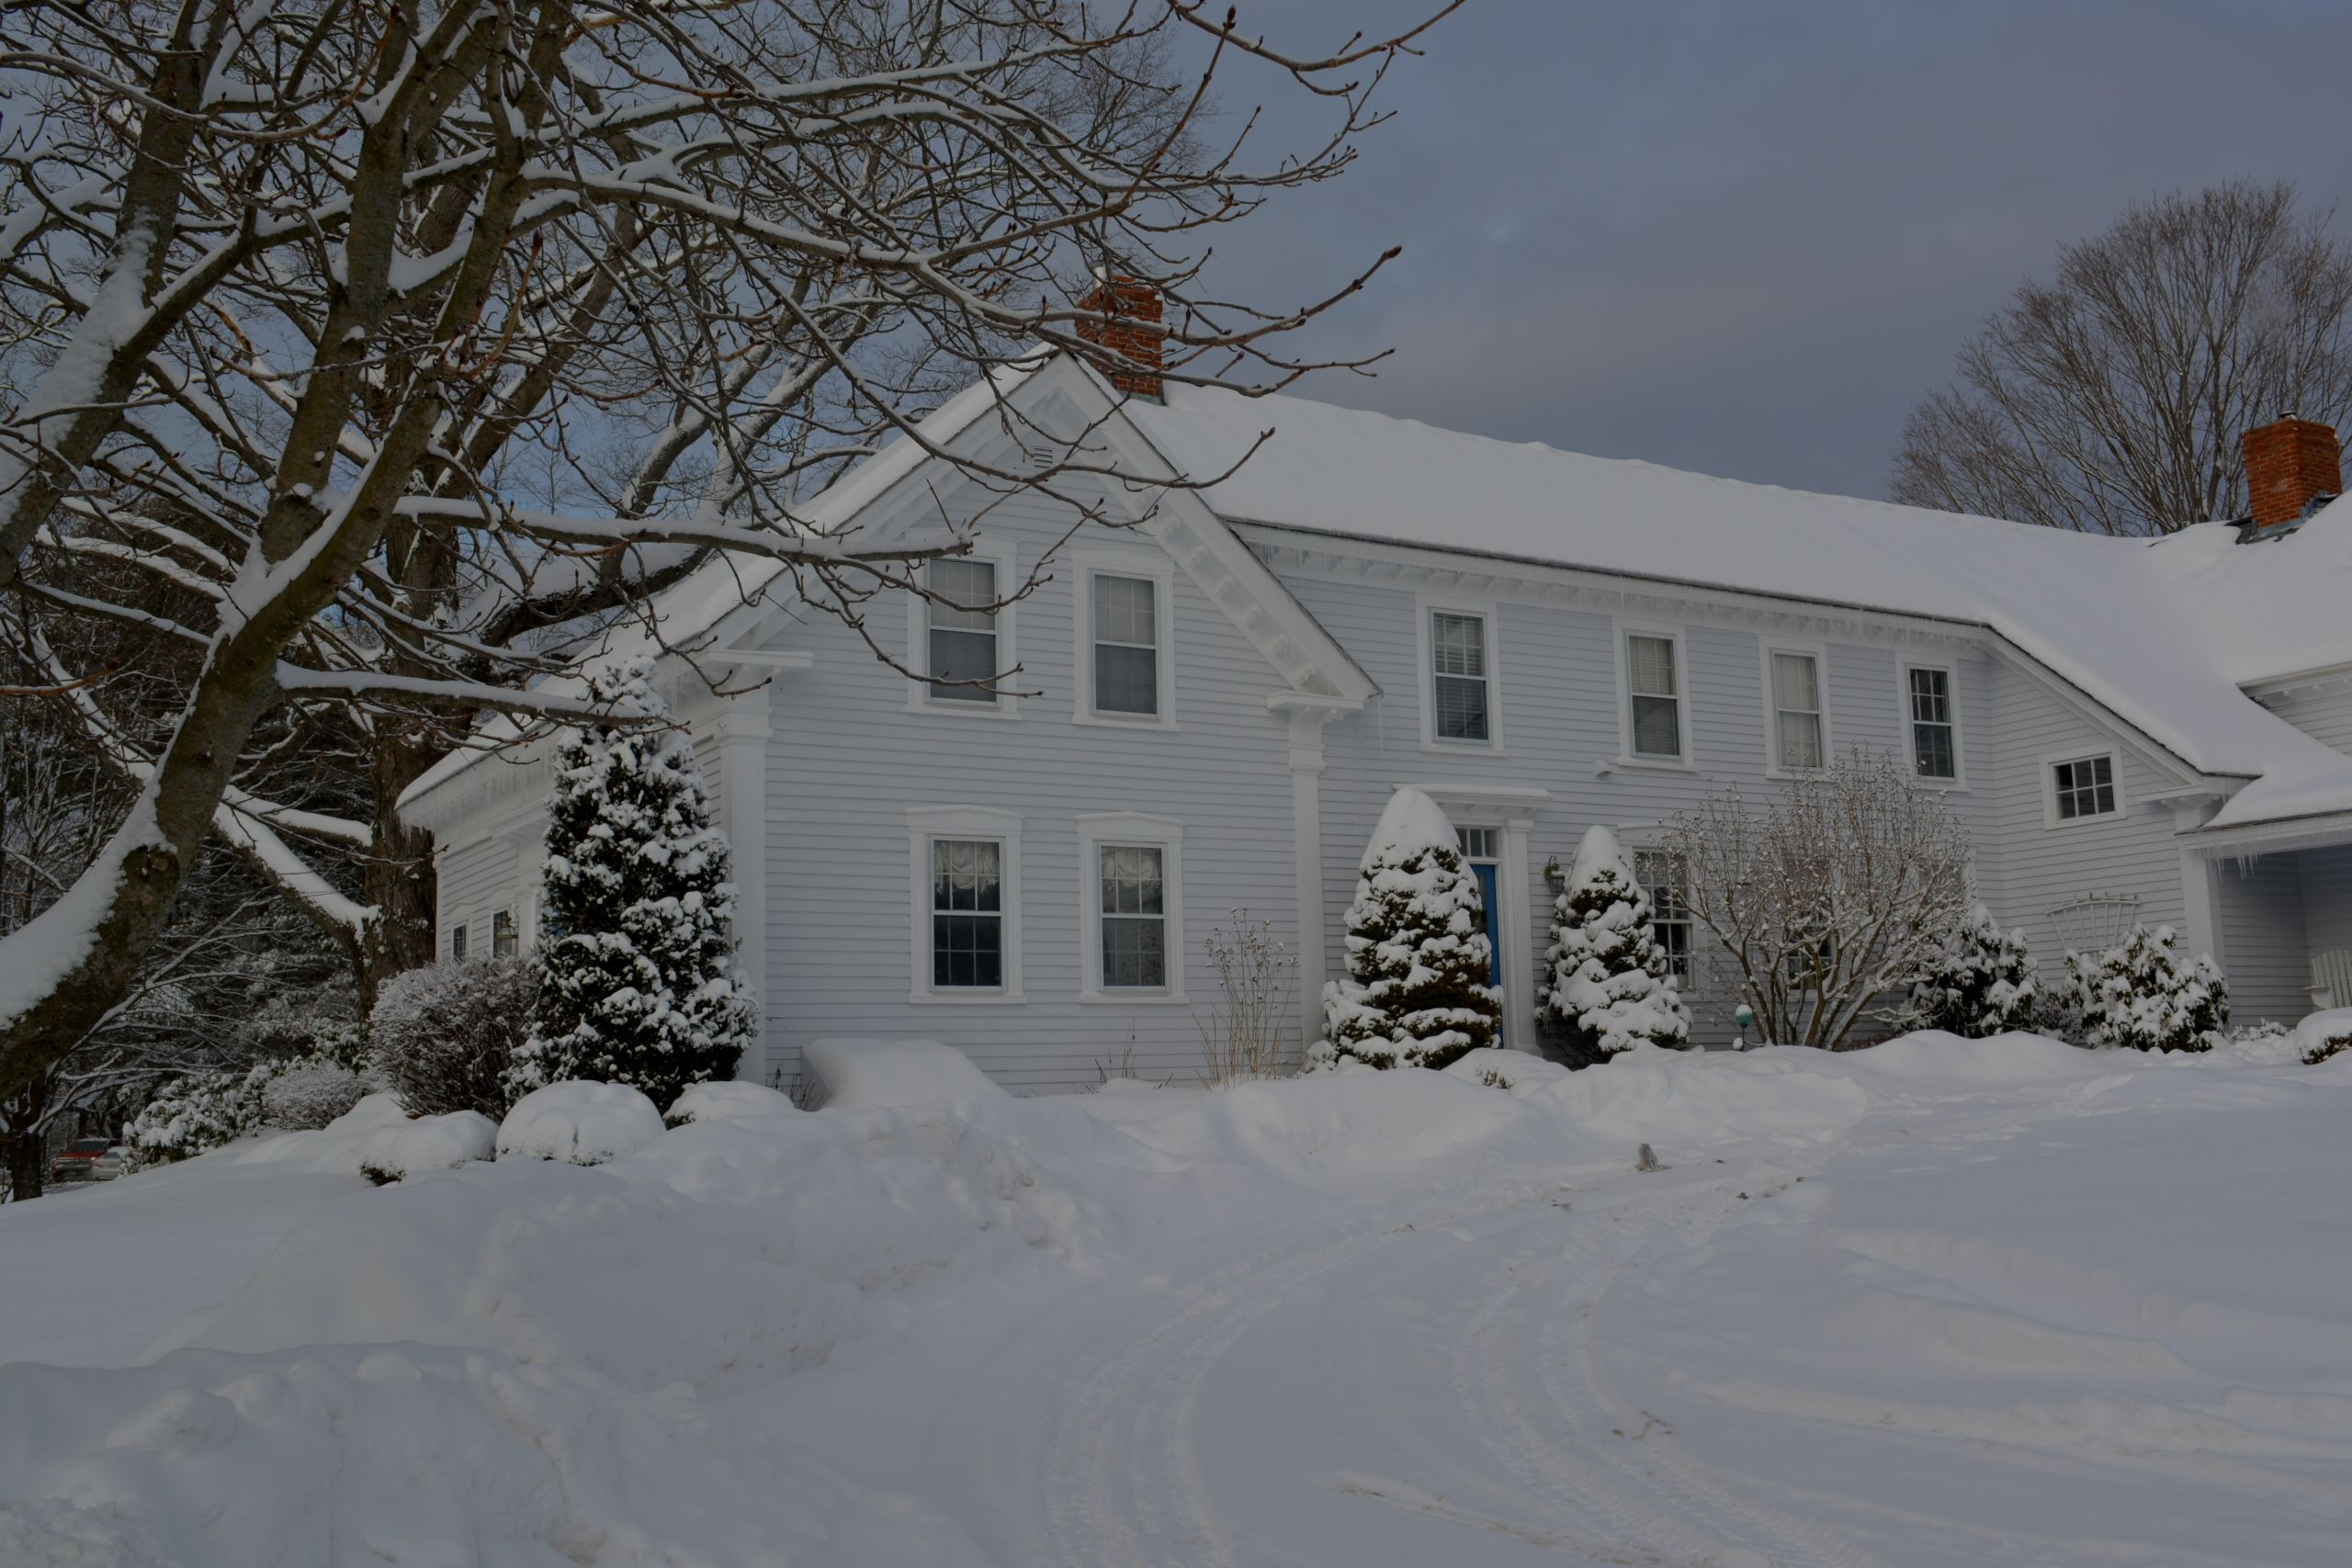 99 Washington Street, Topsfield – Equestrian Home